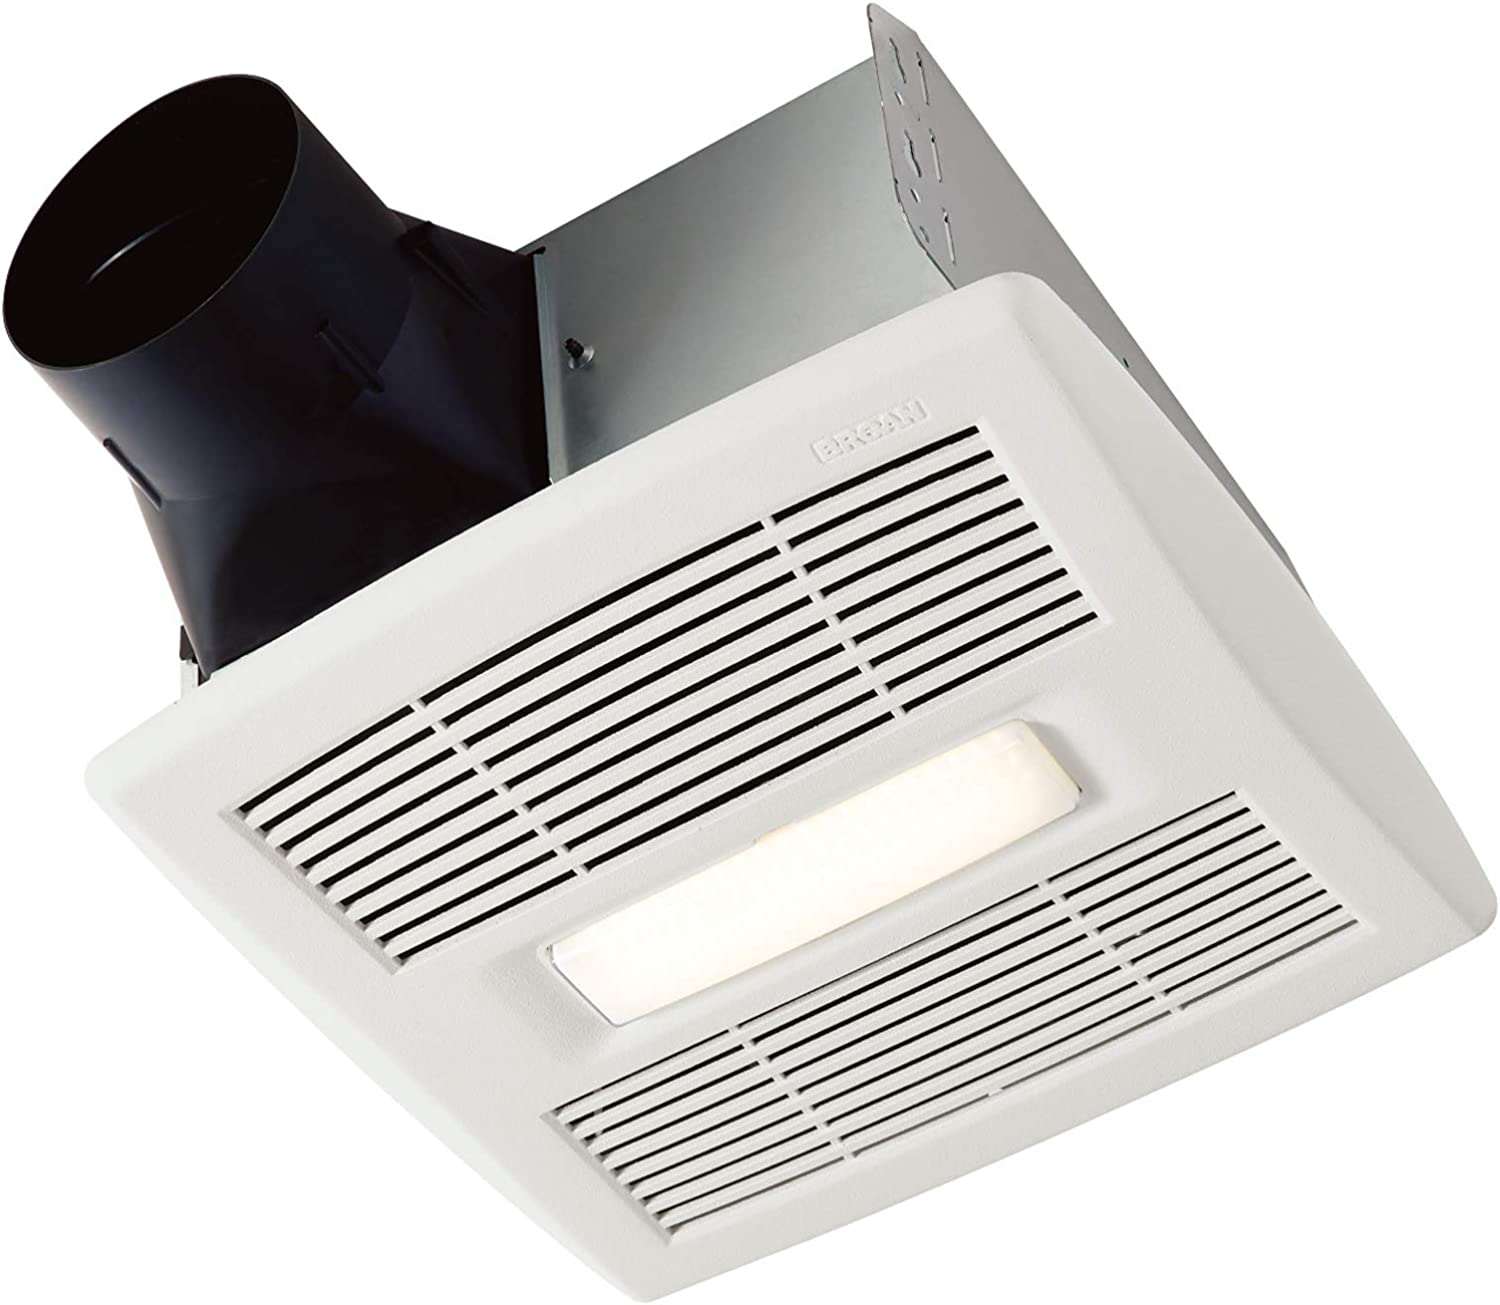 Broan-Nutone AE110L InVent Series Exhaust Fan